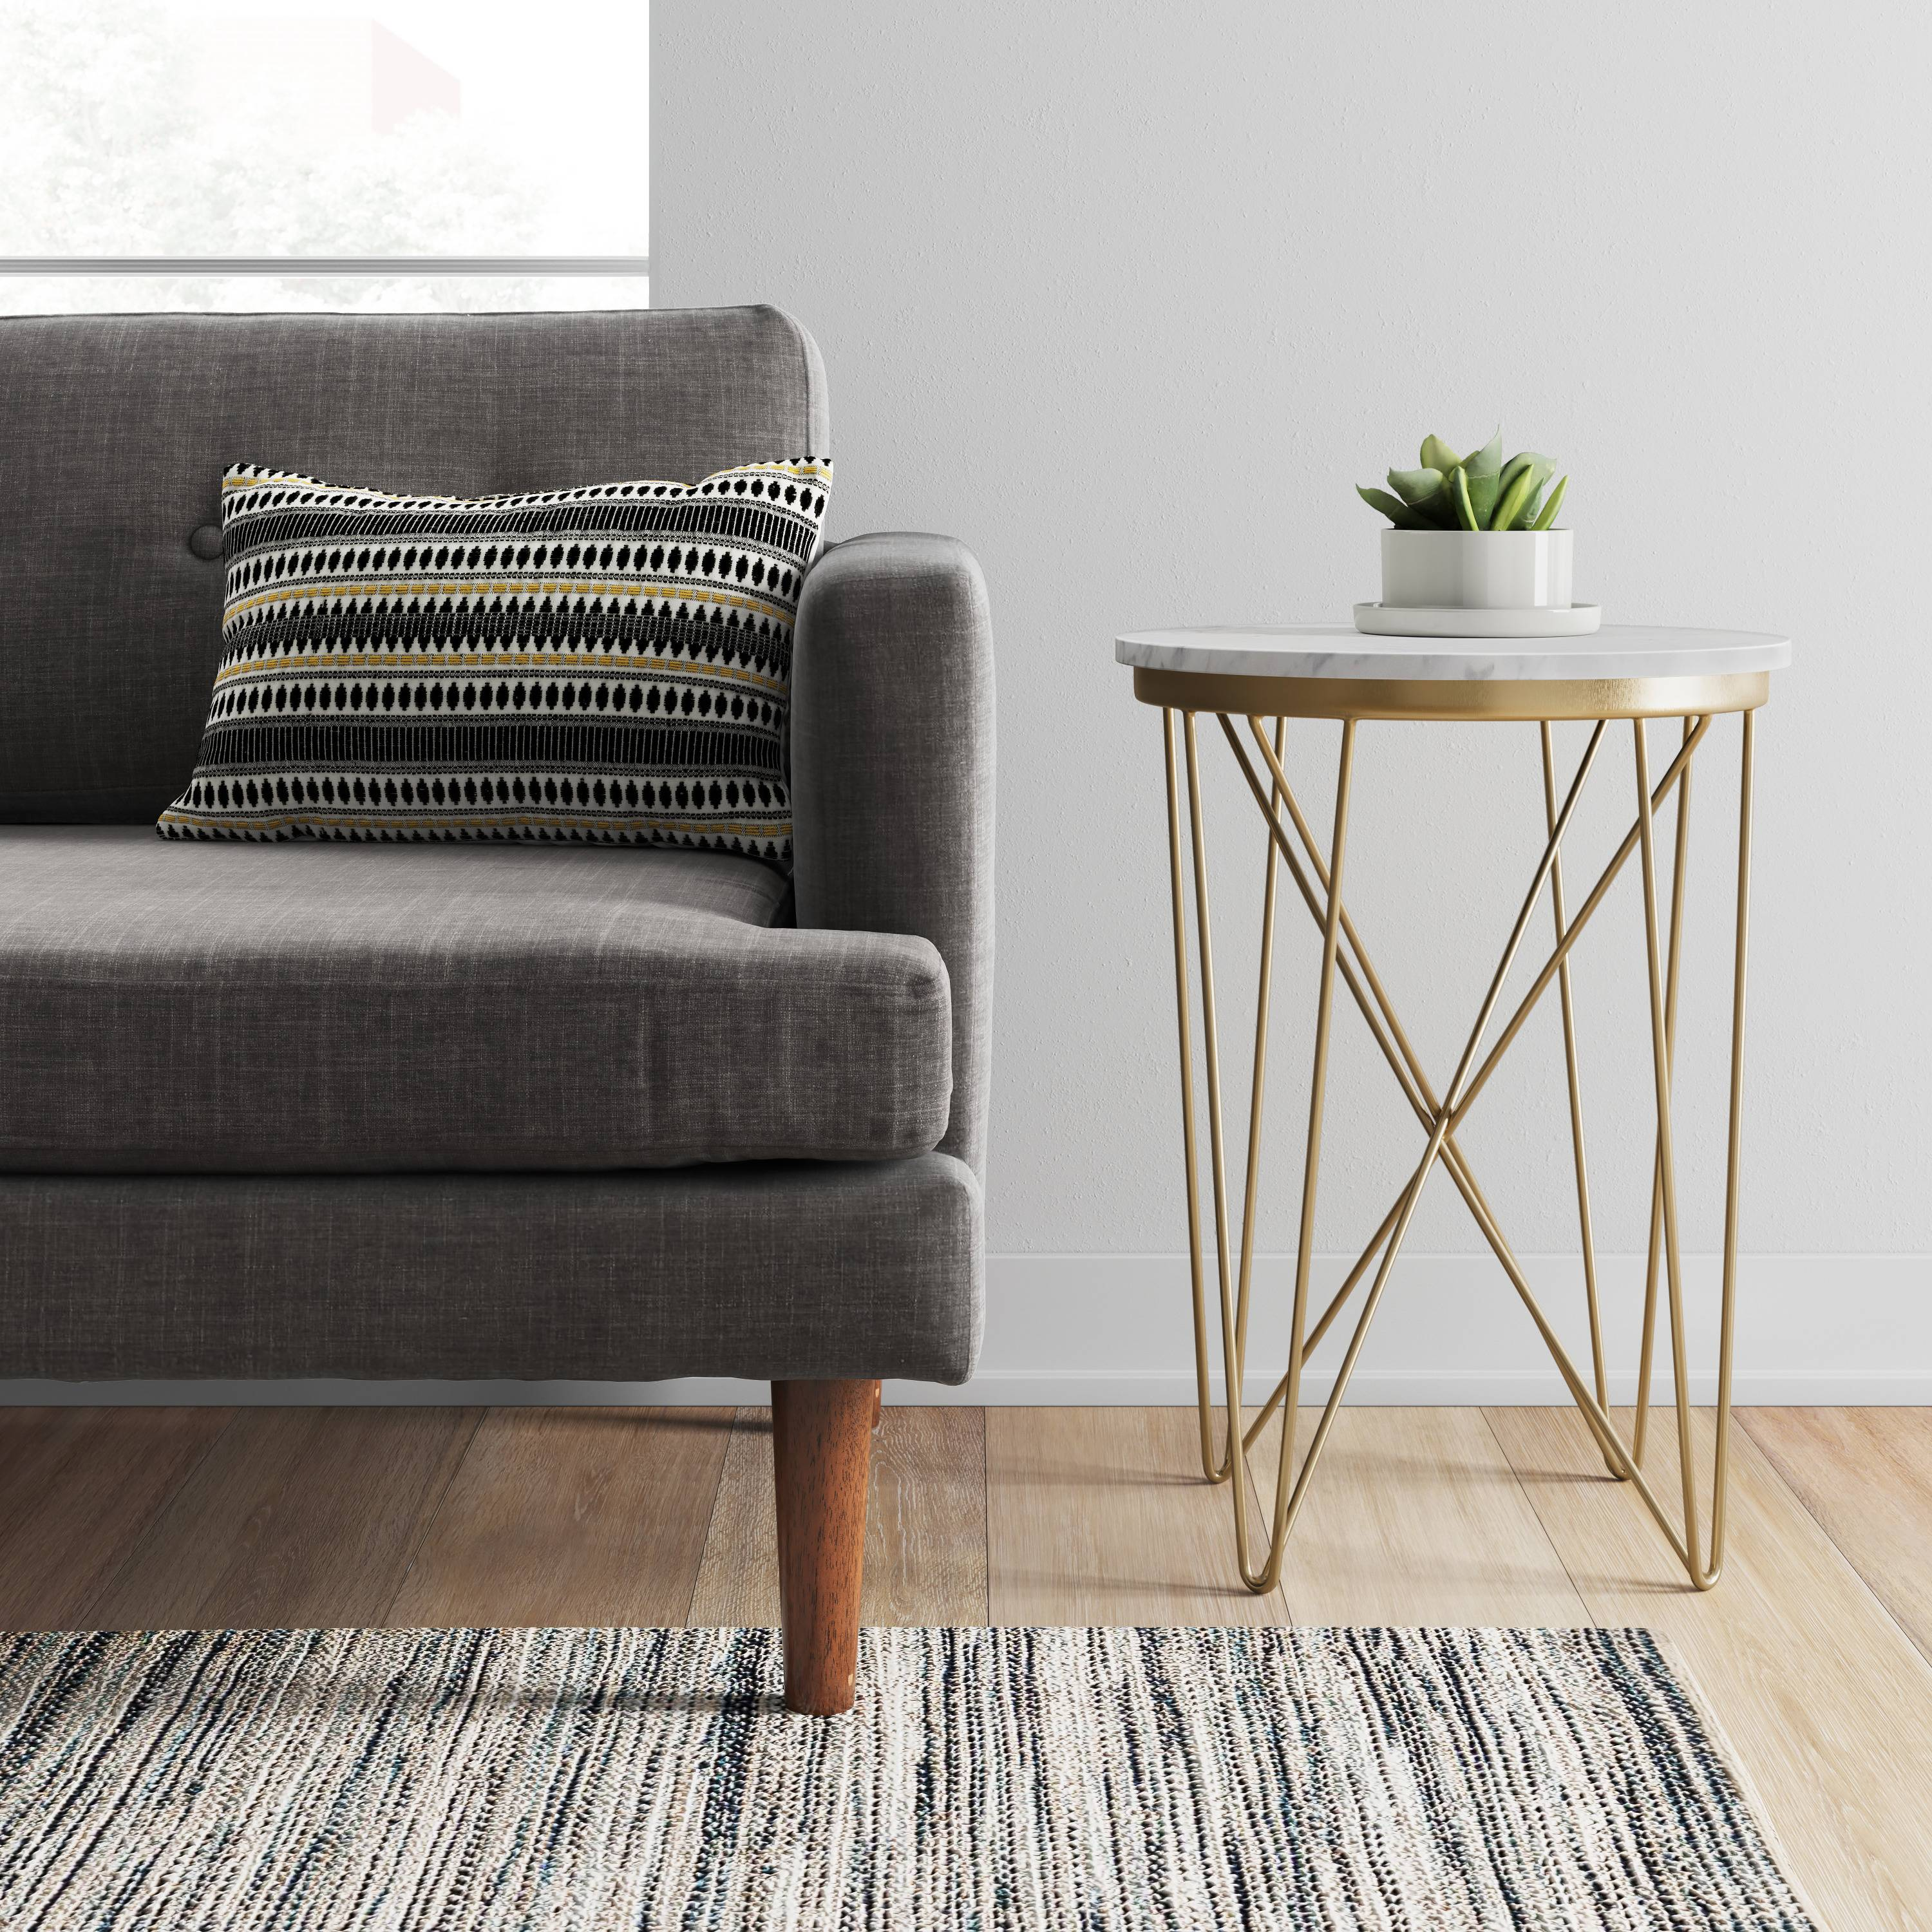 Marble side table from Target